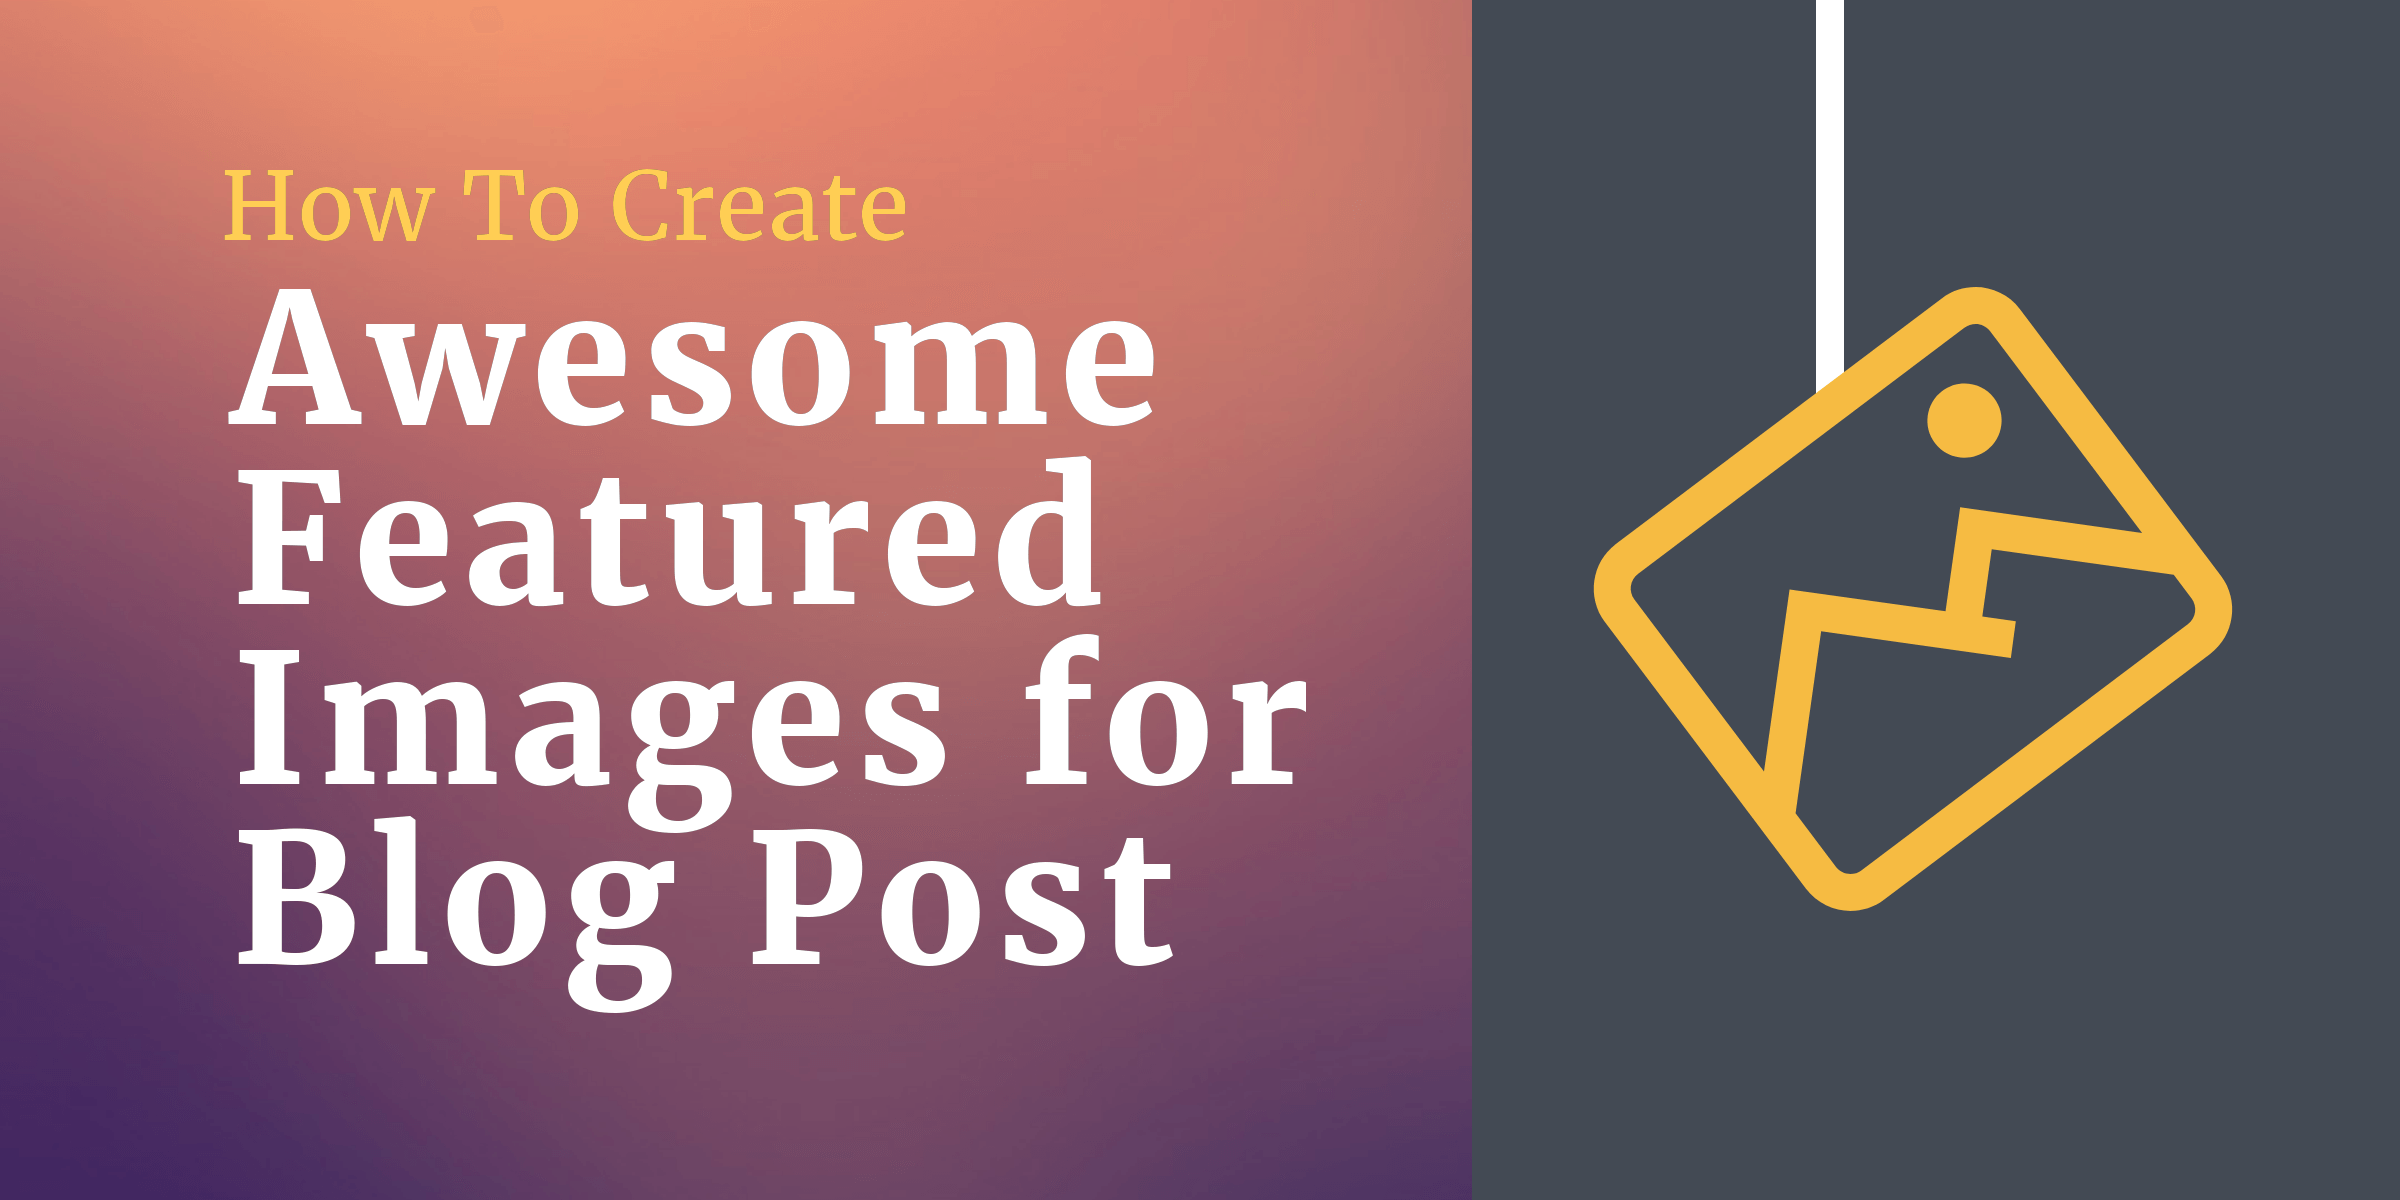 i will create 50 stock images for your blog posts